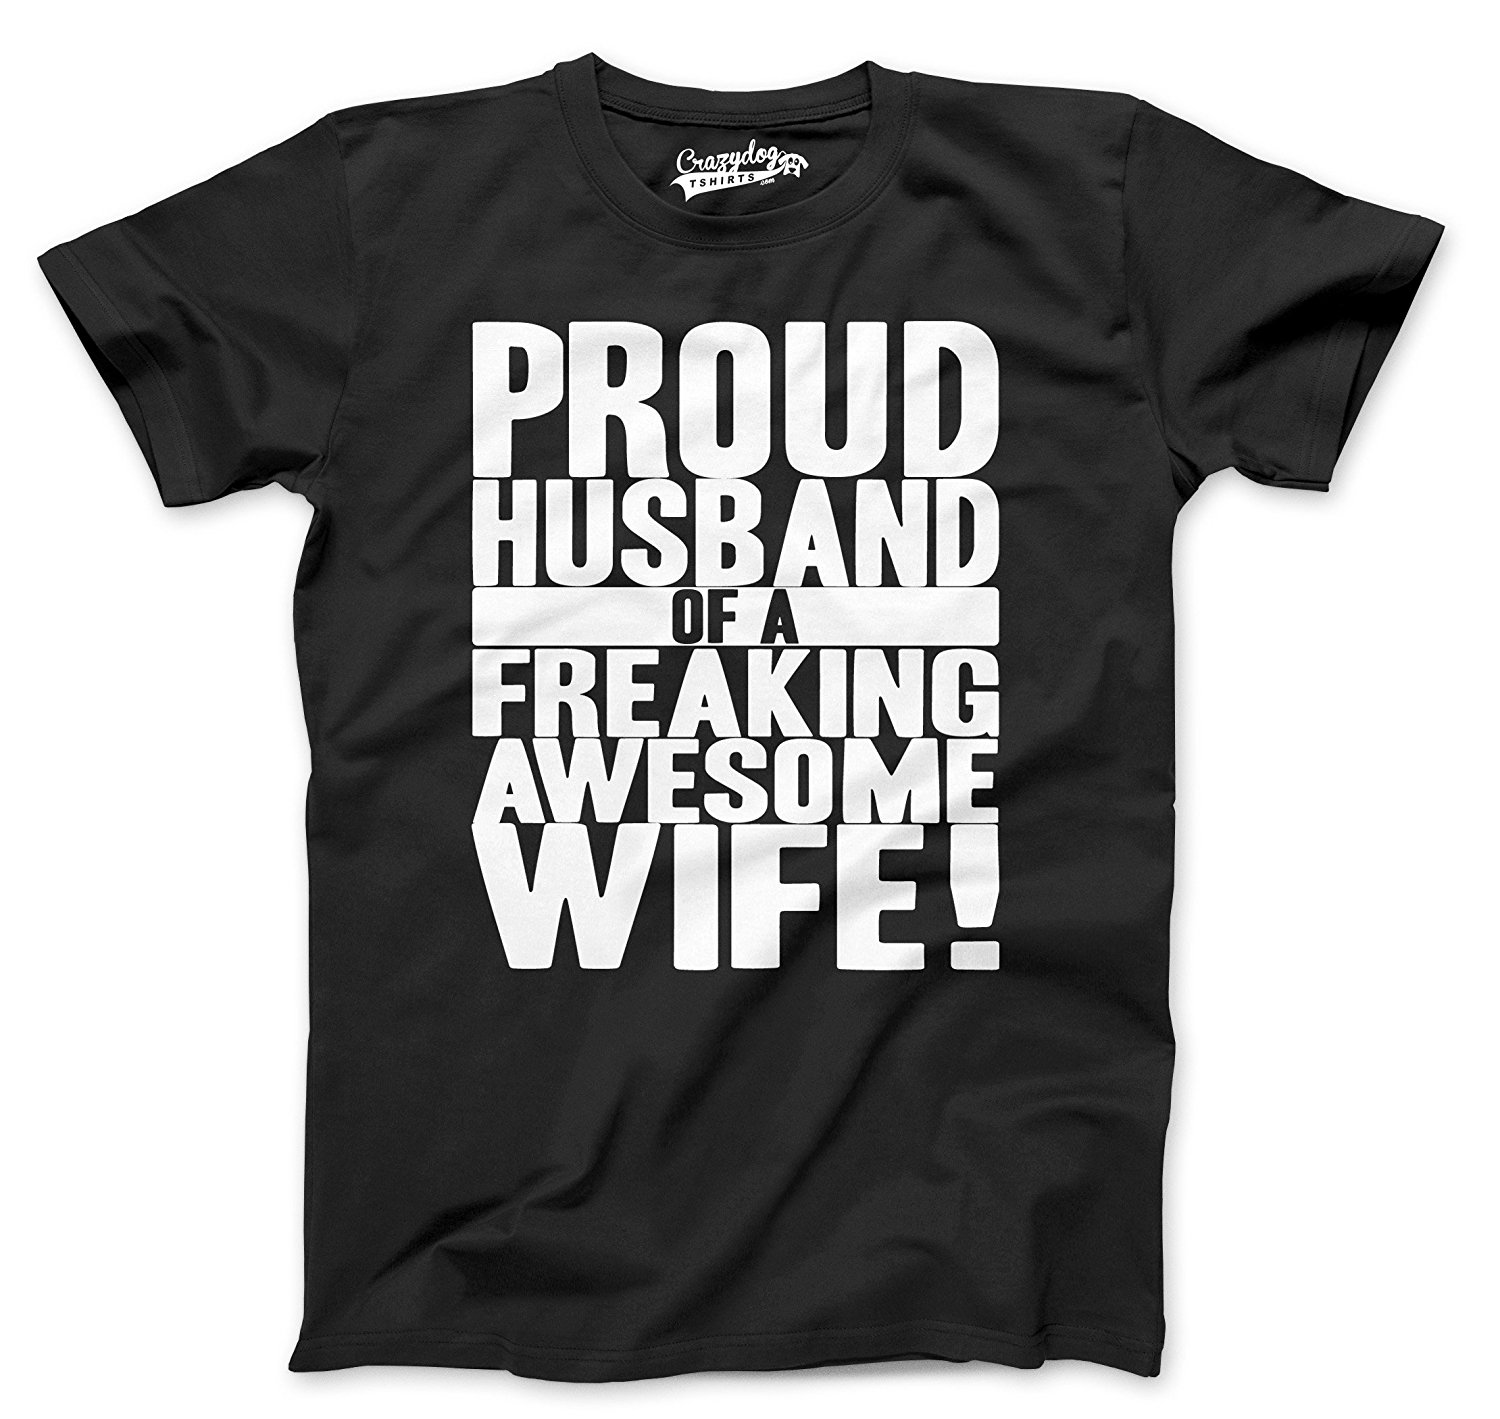 Crazy Dog T-Shirts Mens Proud Husband of A Freaking Awesome Wife Funny Marriage T Shirts Youth Summer O-Neck Tops